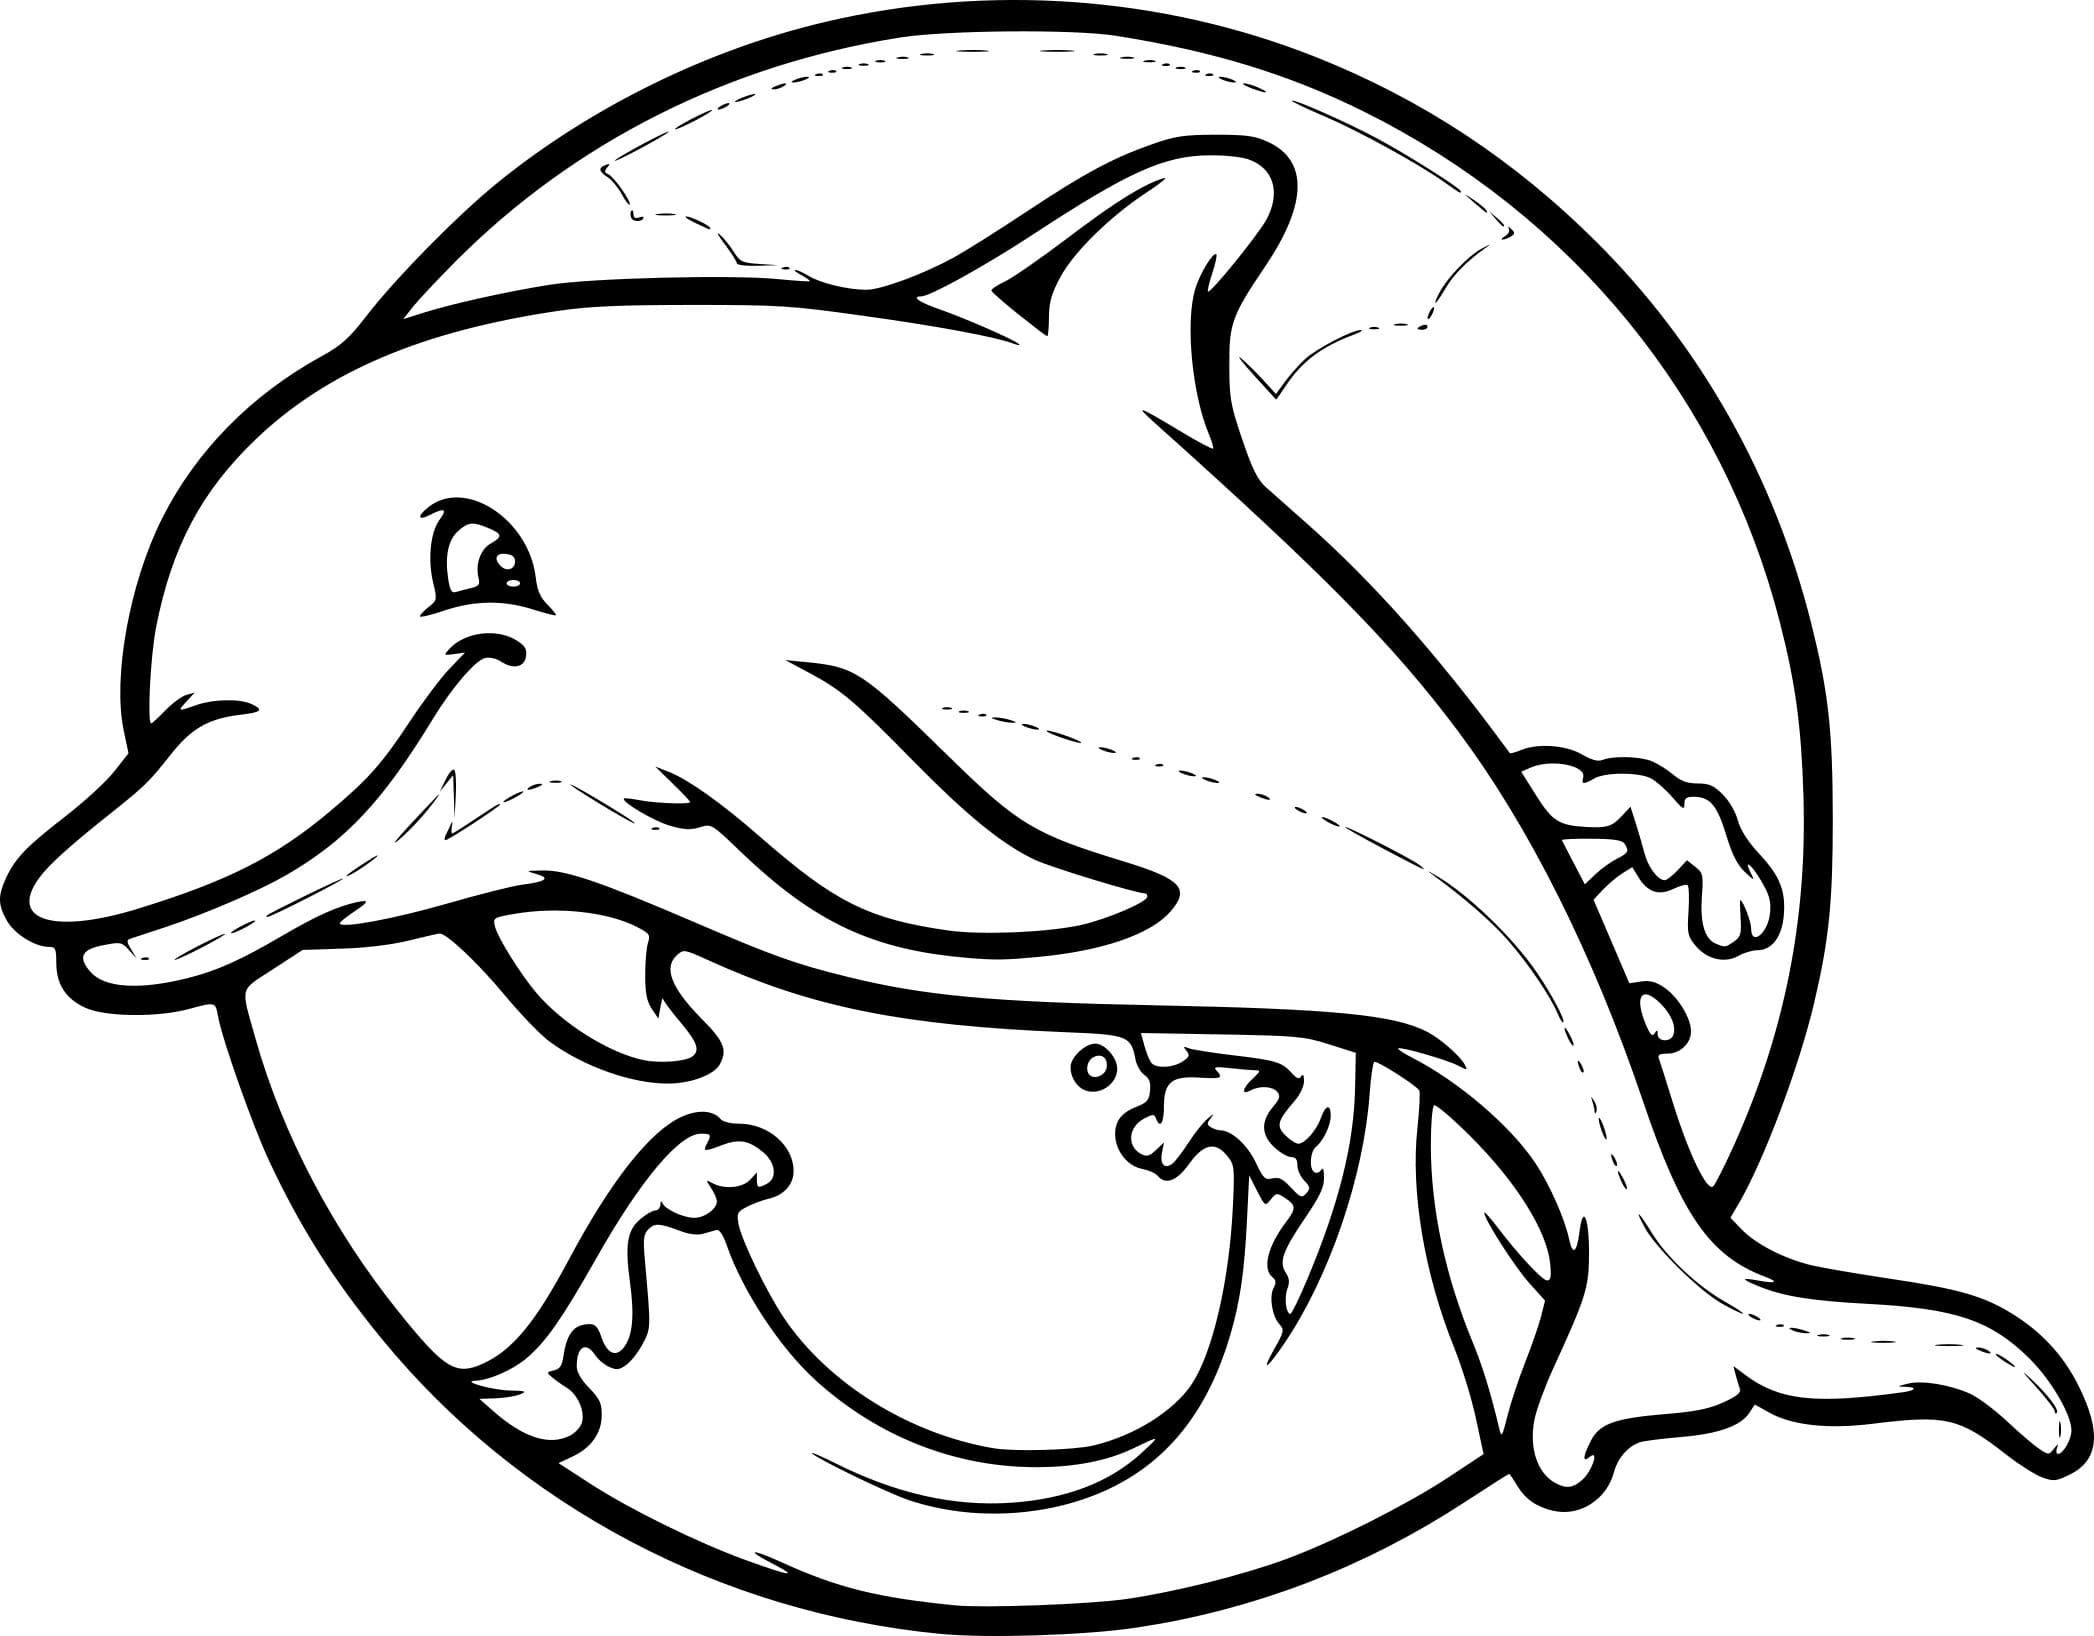 free dolphin coloring pages dolphins to color for children dolphins kids coloring pages free dolphin pages coloring